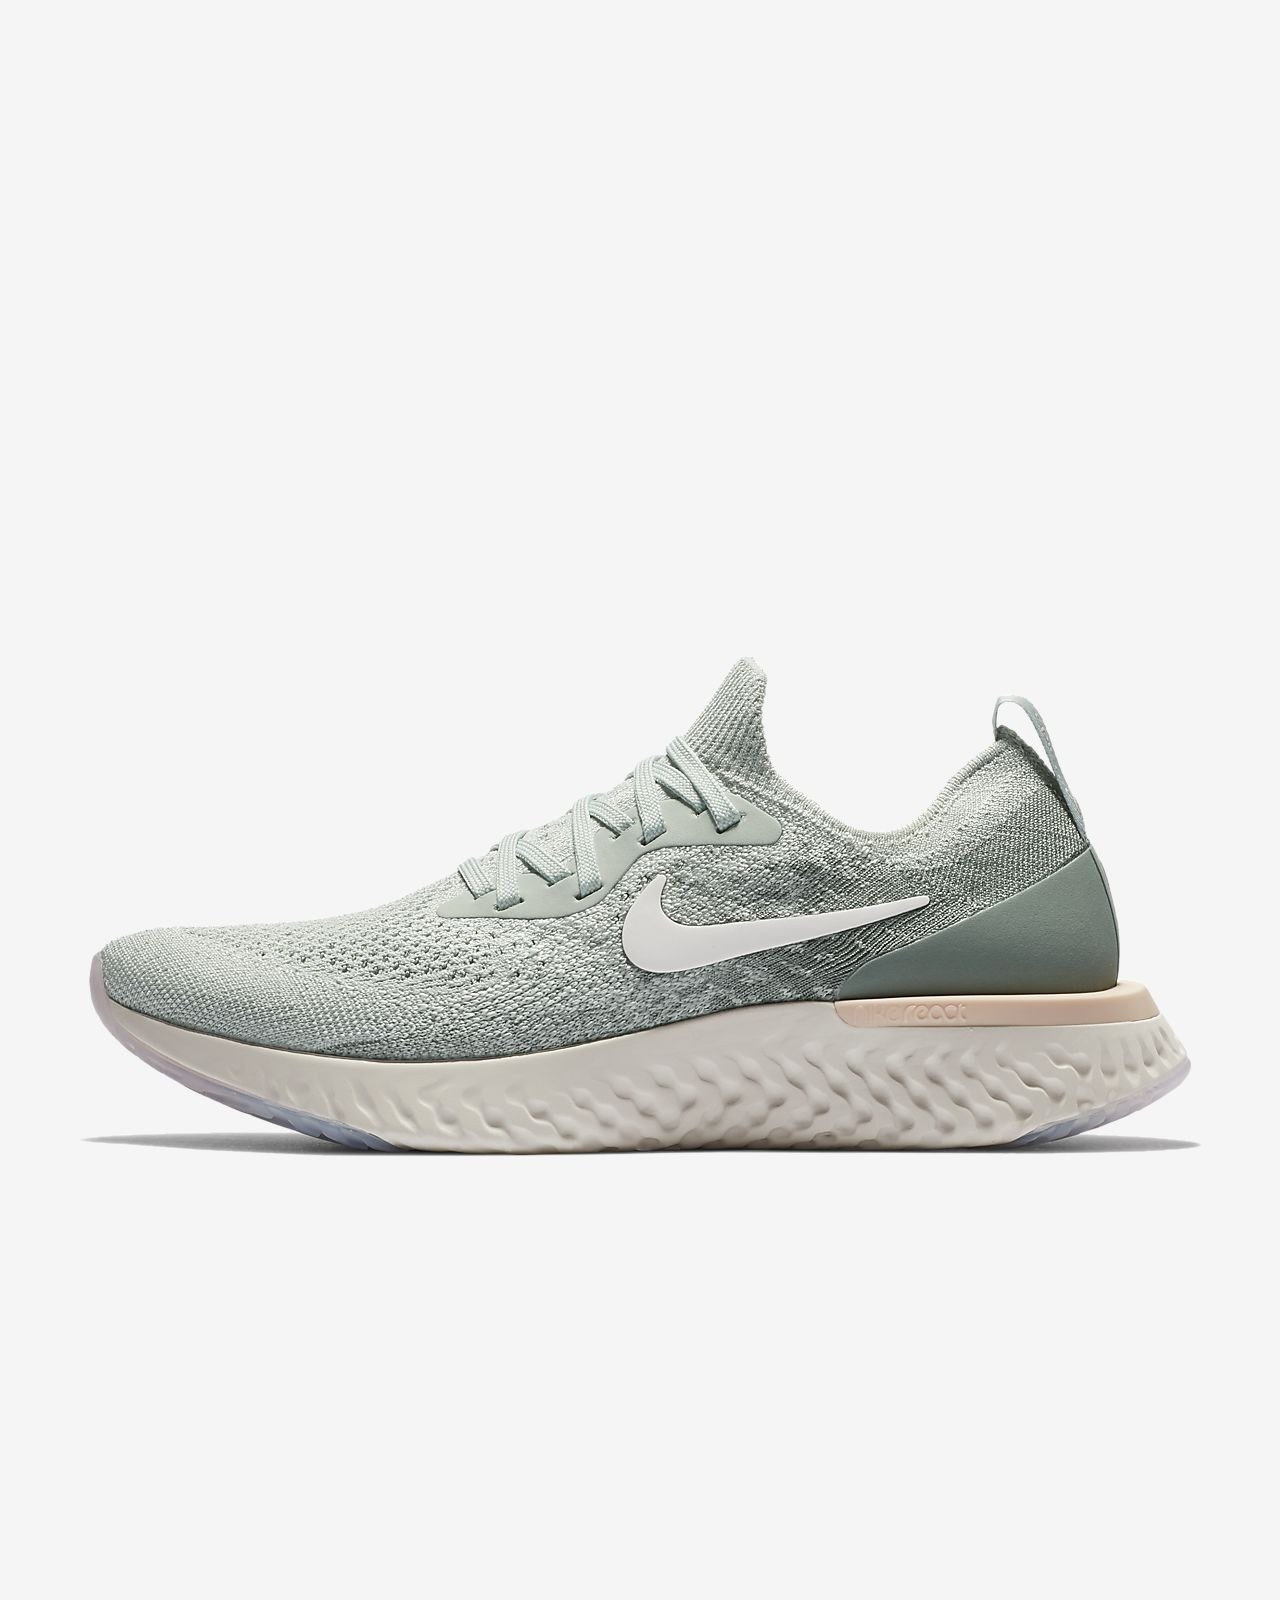 3d8f2daa365 coupon code for nike epic react flyknit green d5cb5 f54bd